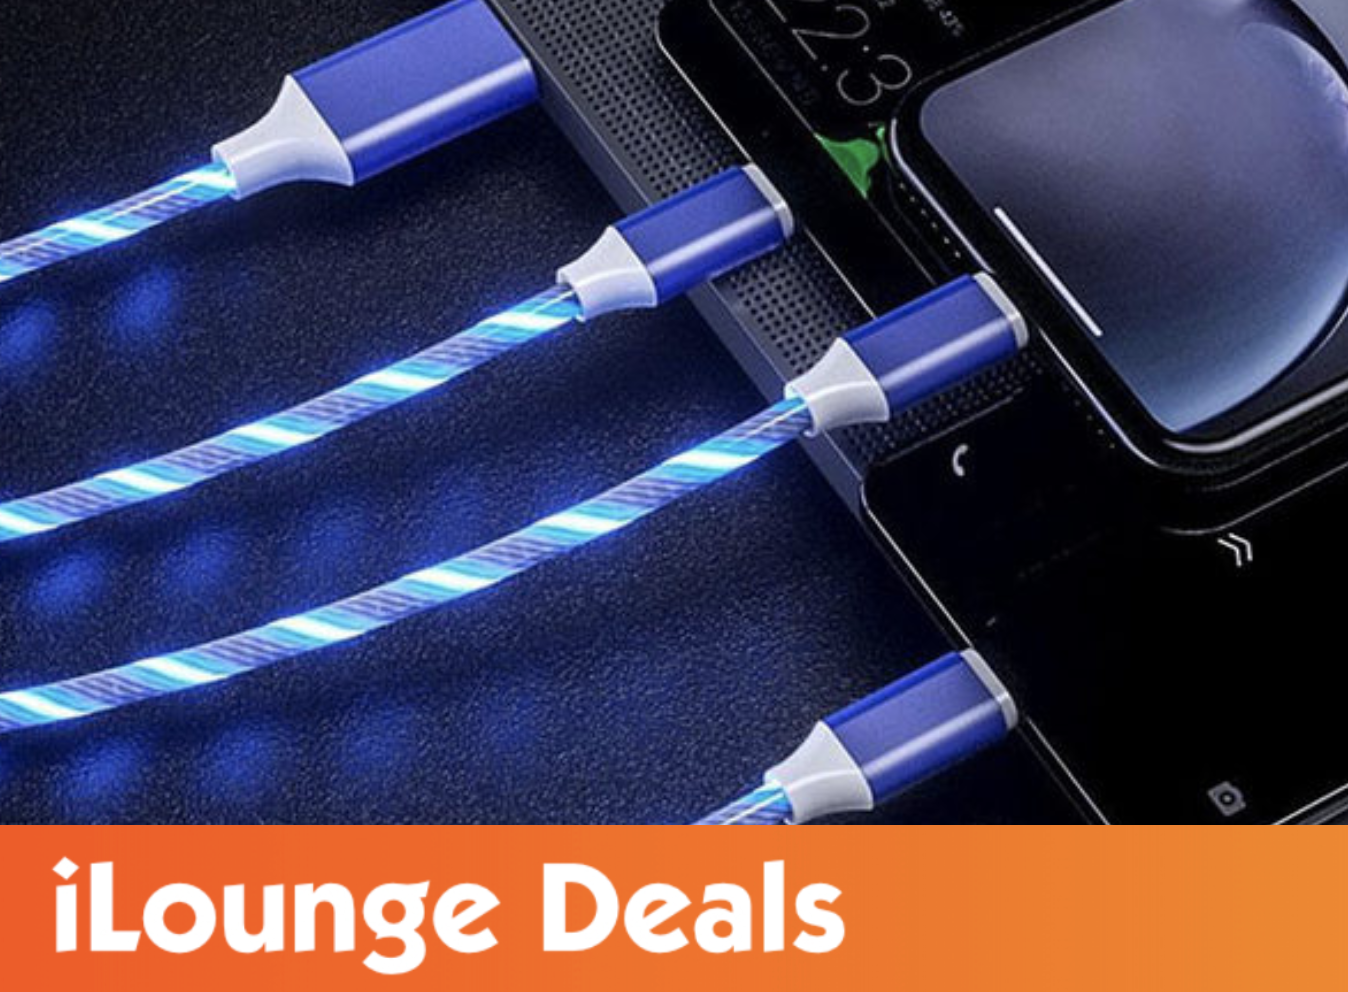 LED Light 3-in-1 Micro/Type-C/Lightning Charger Cable is 58% off